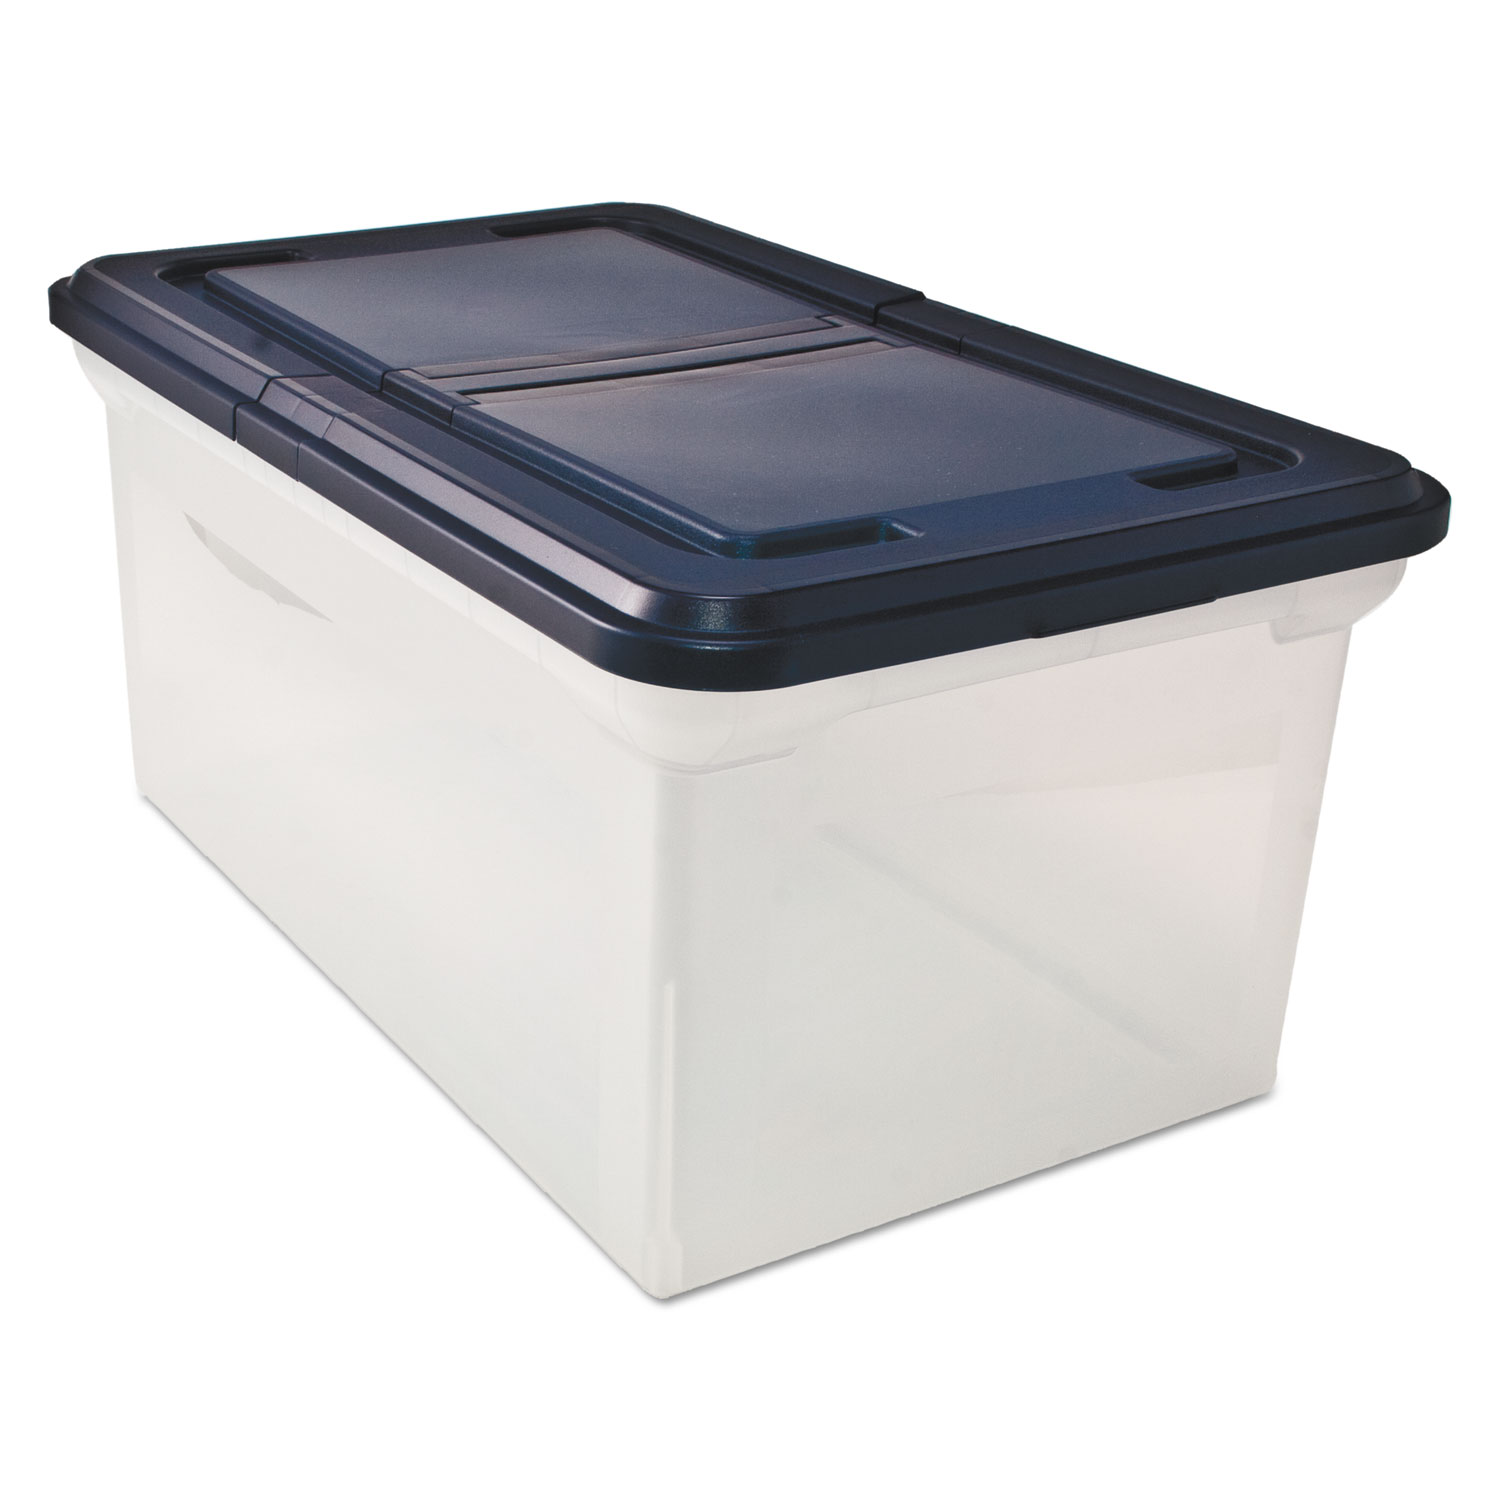 file tote with hinged lid by innovative storage designs. Black Bedroom Furniture Sets. Home Design Ideas